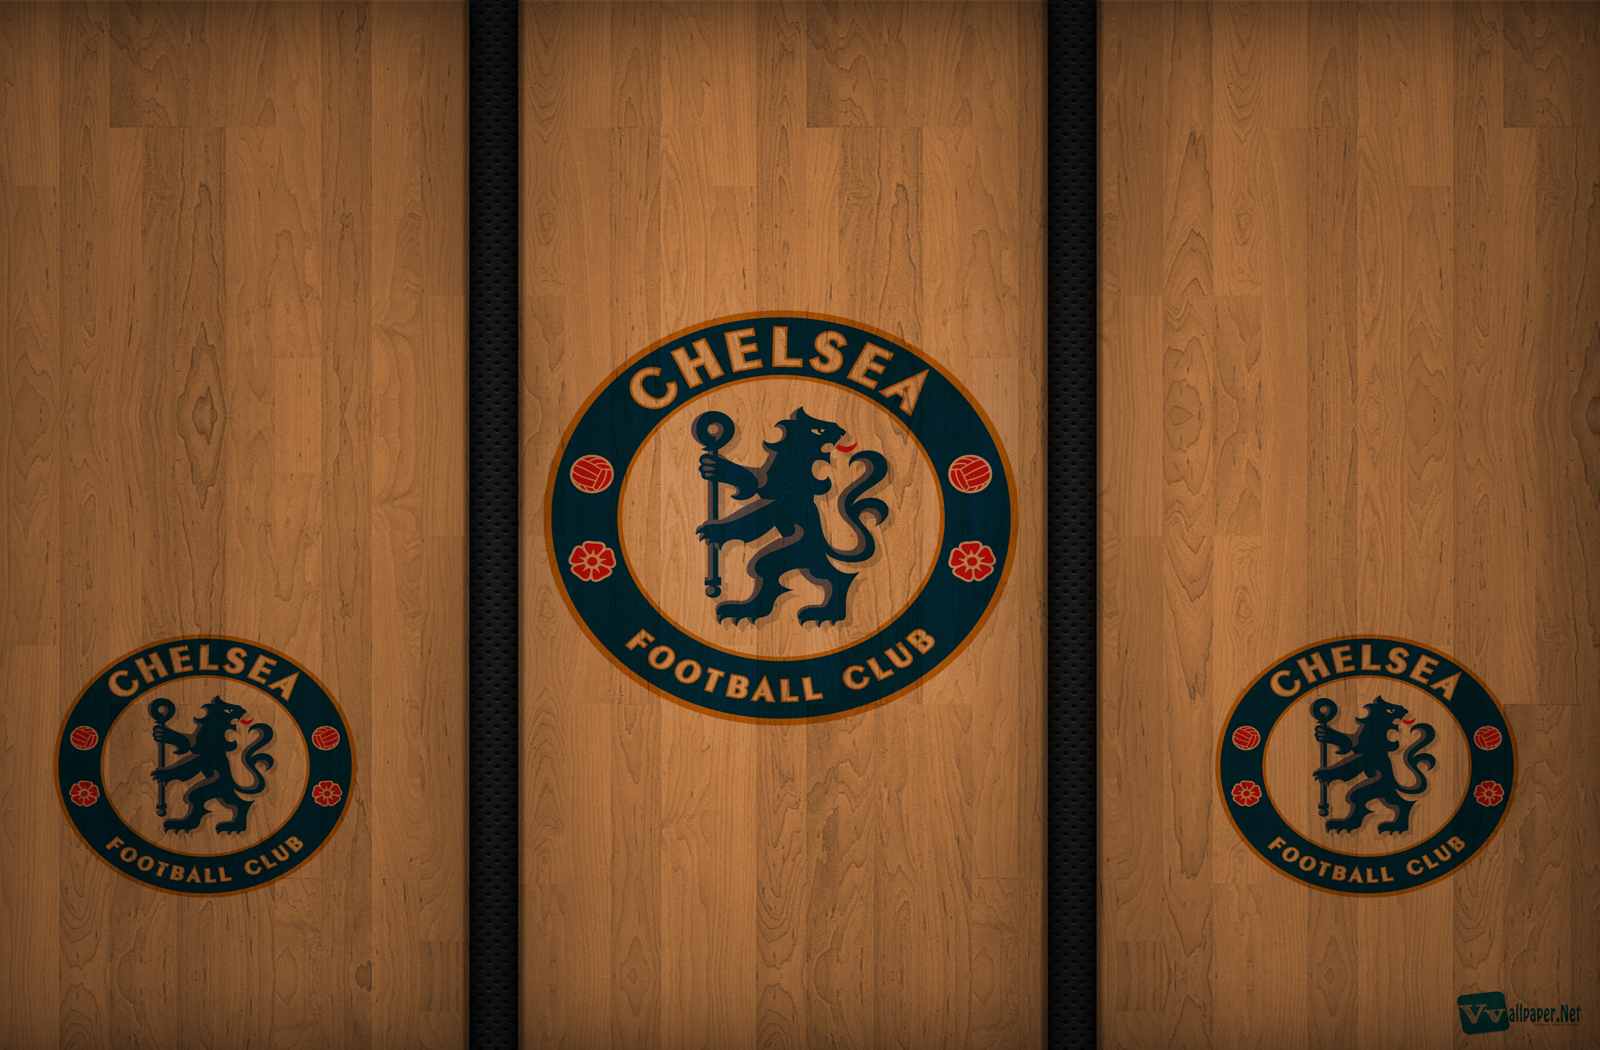 Chelsea Football Club Logo Hd Wallpapers Desktop Wallpapers